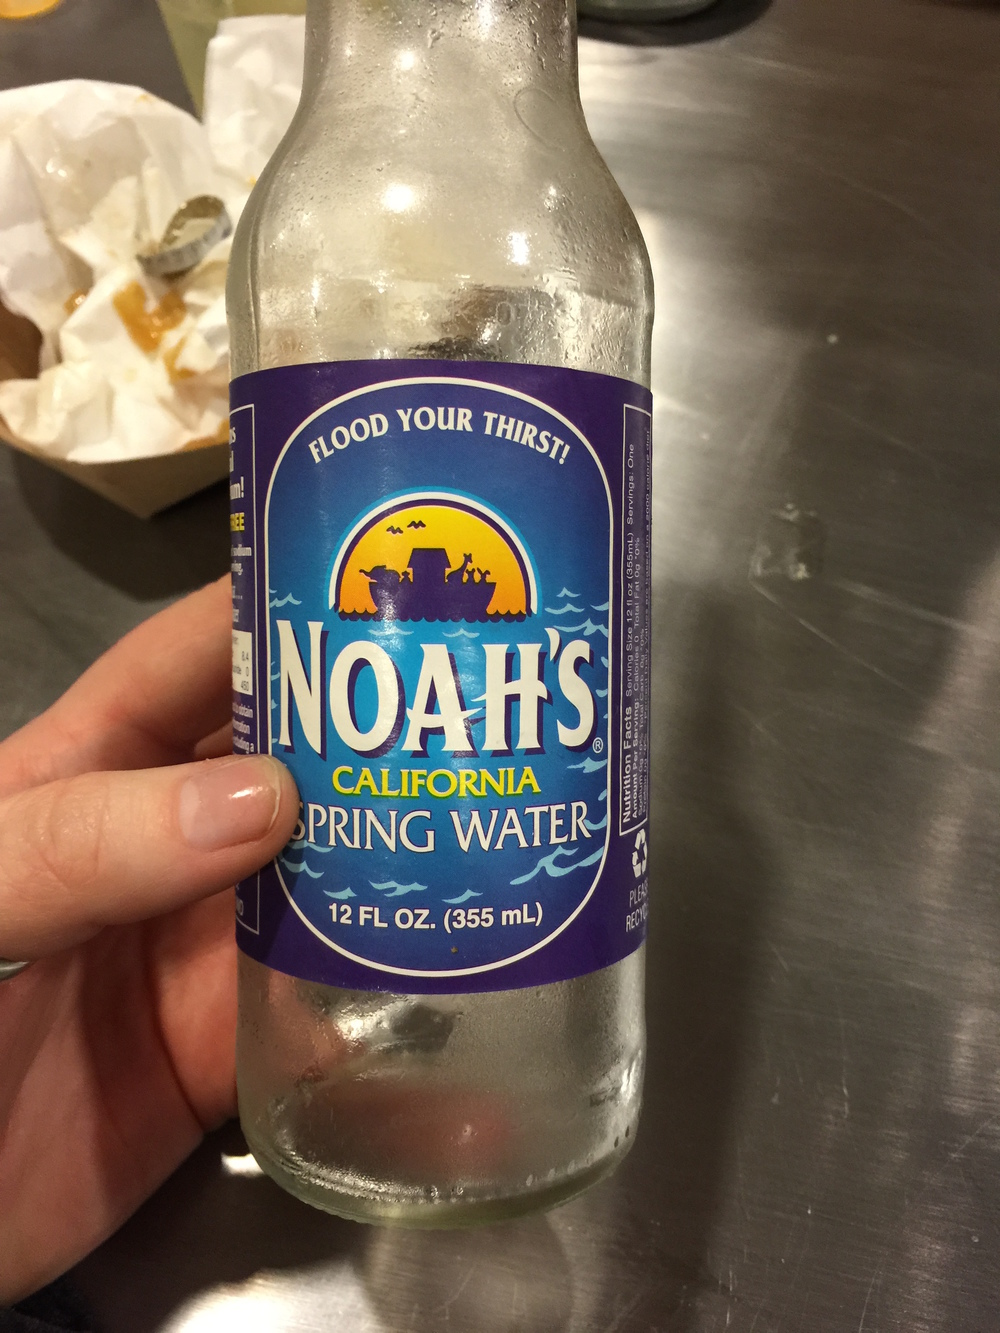 Noah's Water, flooding your thirst since the Deluvian age.